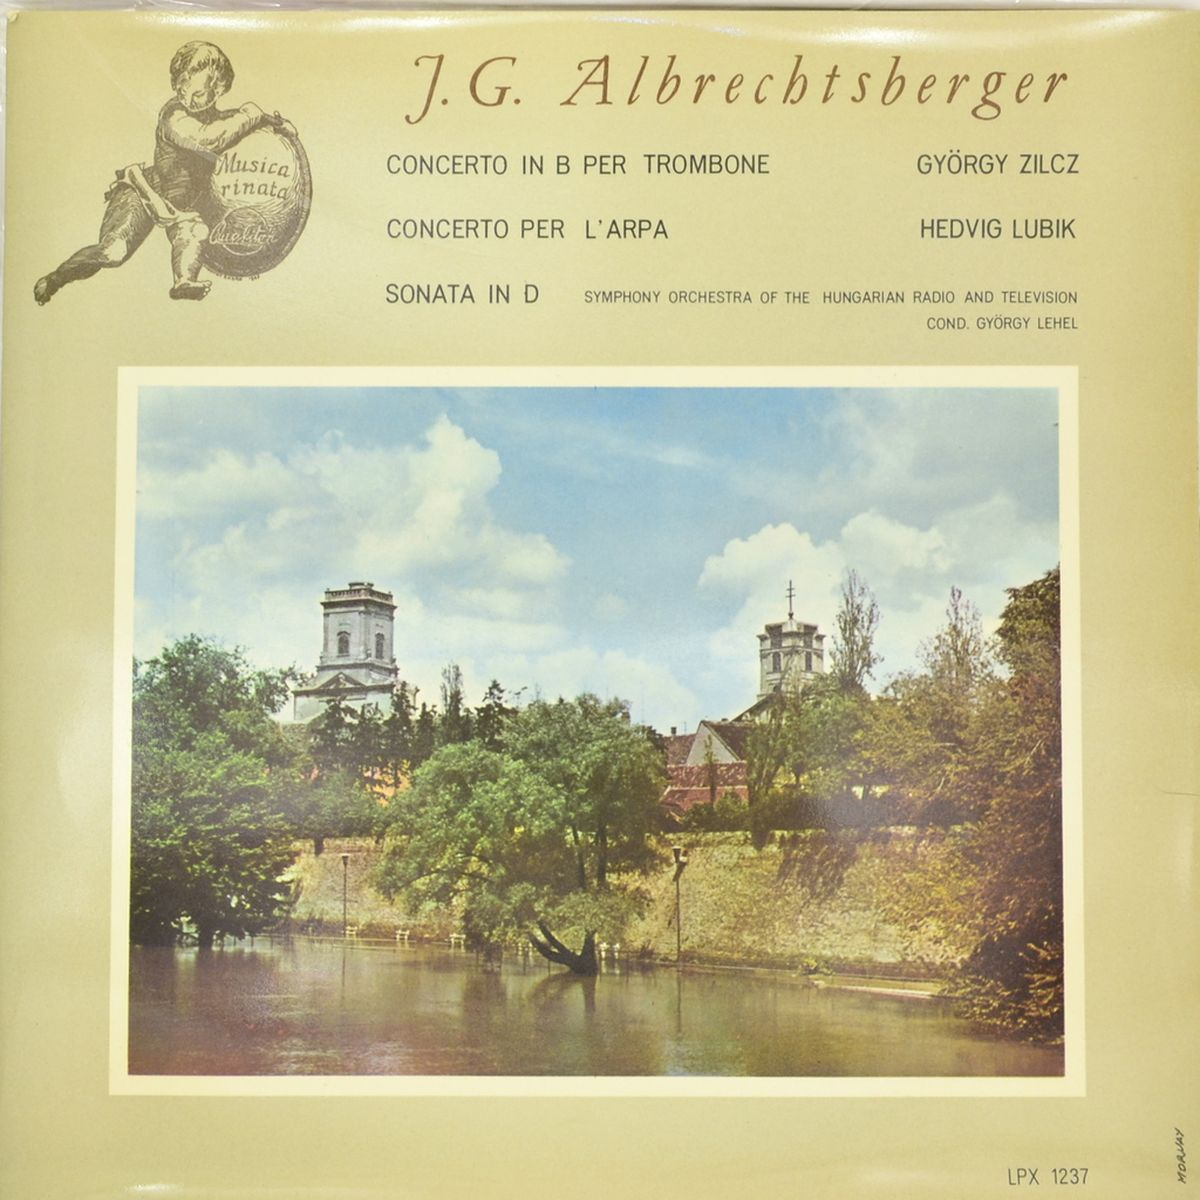 J. G. Albrechtsberger, Gyorgy Zilcz, Hedvig Lubik, Symphony Orchestra Of The Hungarian Radio And Television – Concerto In B Per Trombone / Concerto Per L Arpa / Sonata In D (LP) тромбоун шорти trombone shorty parking lot symphony lp